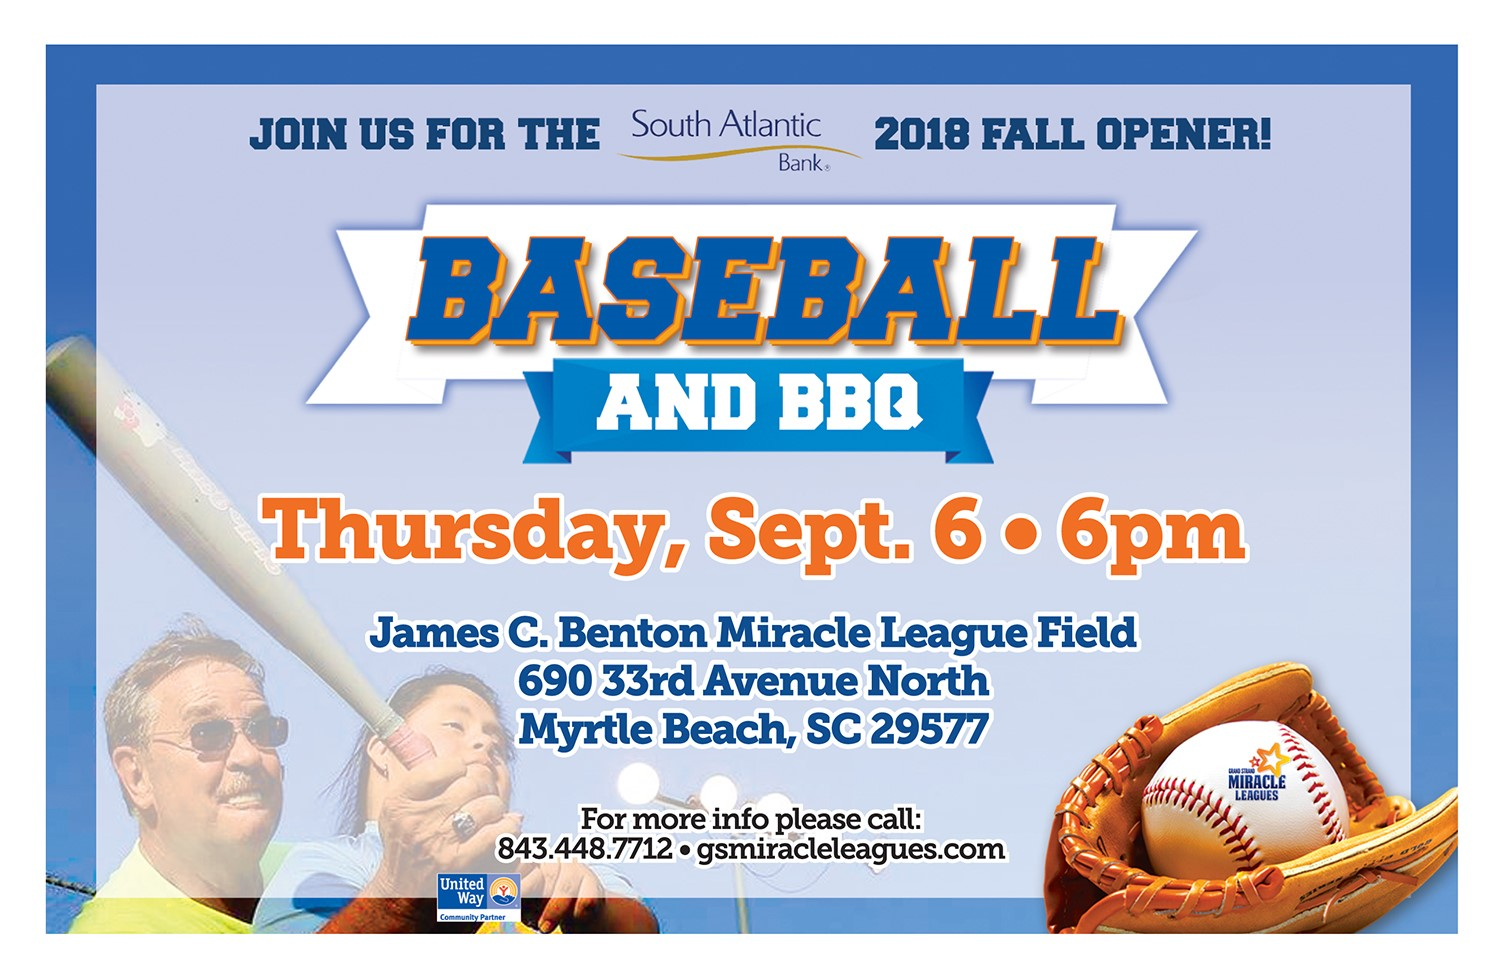 Join us for the 2018 Fall Opener. Baseball and BBQ Thursday Sept 6